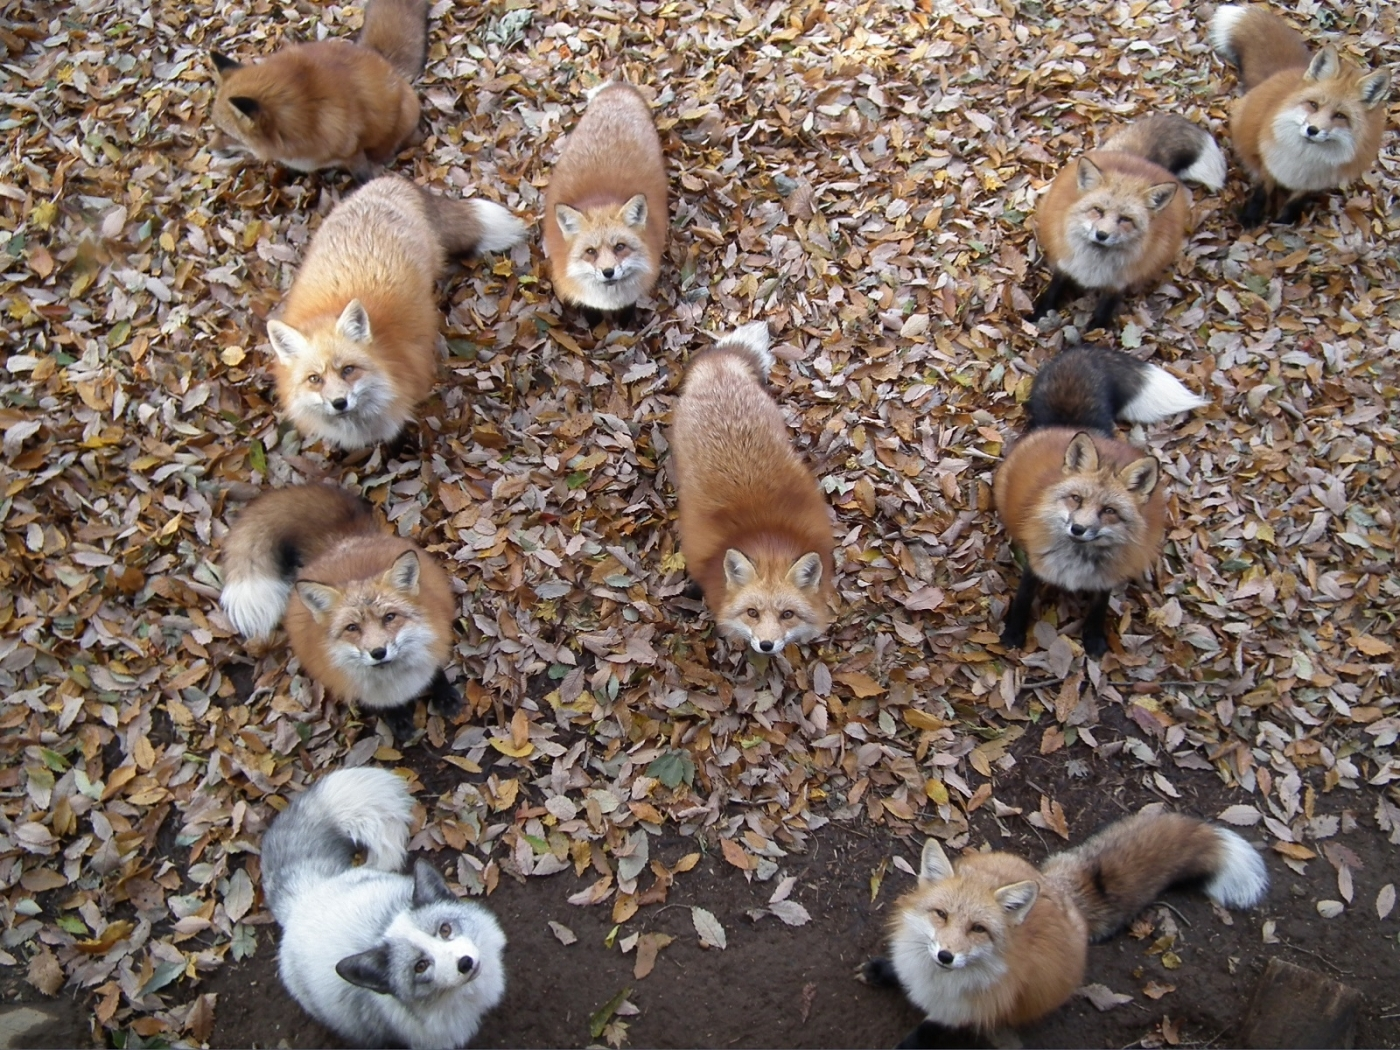 41001 download wallpaper Animals, Fox screensavers and pictures for free